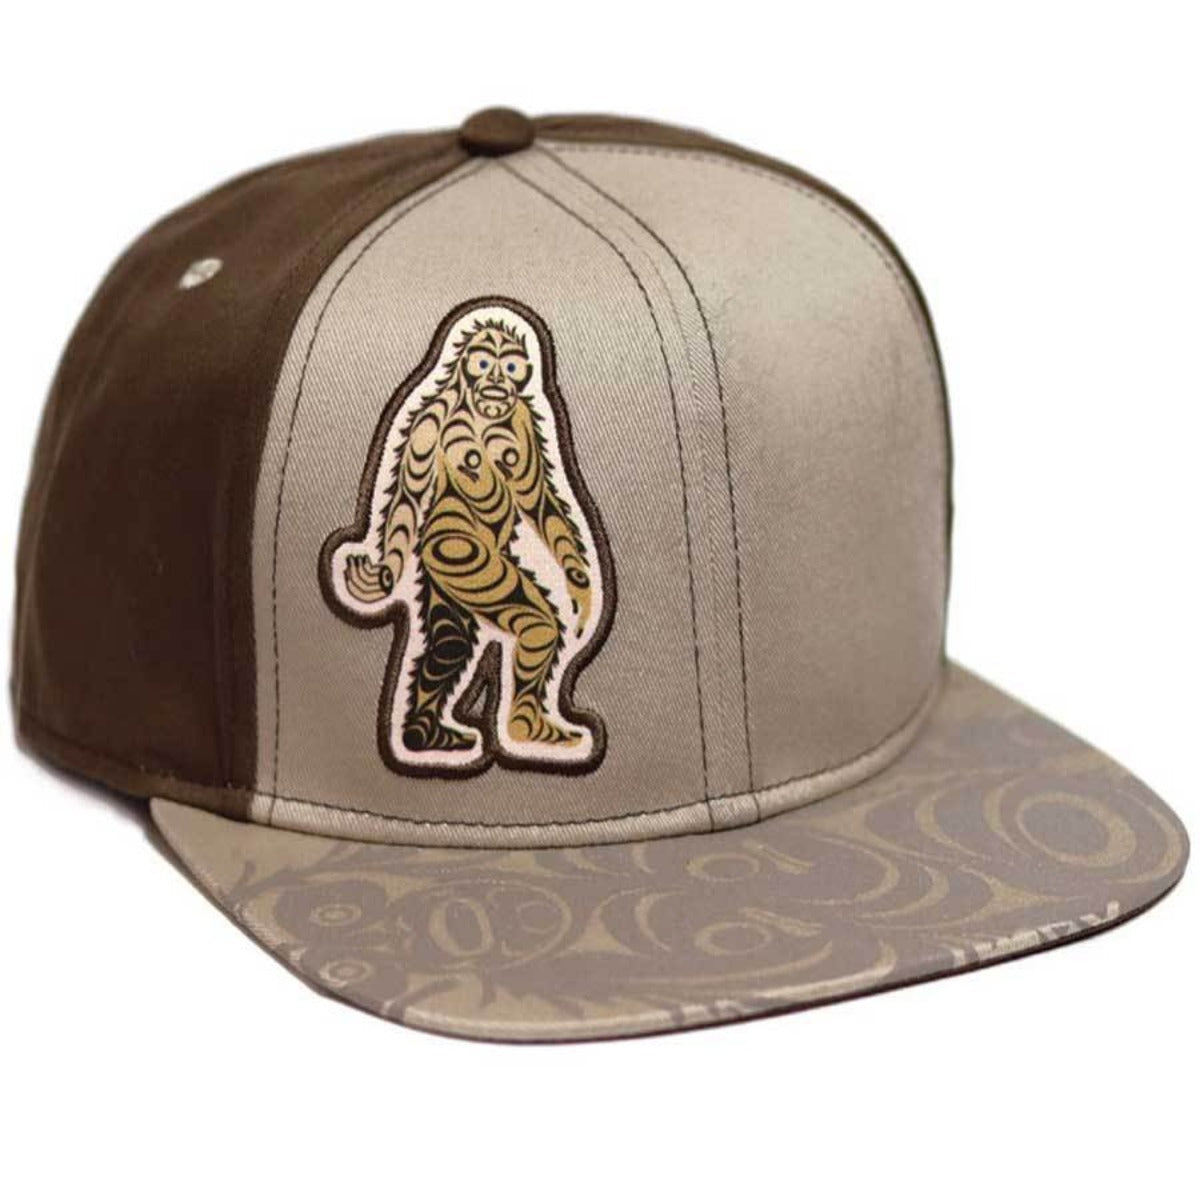 Snap Back Hat Sasquatch Francis Horne Sr. big foot